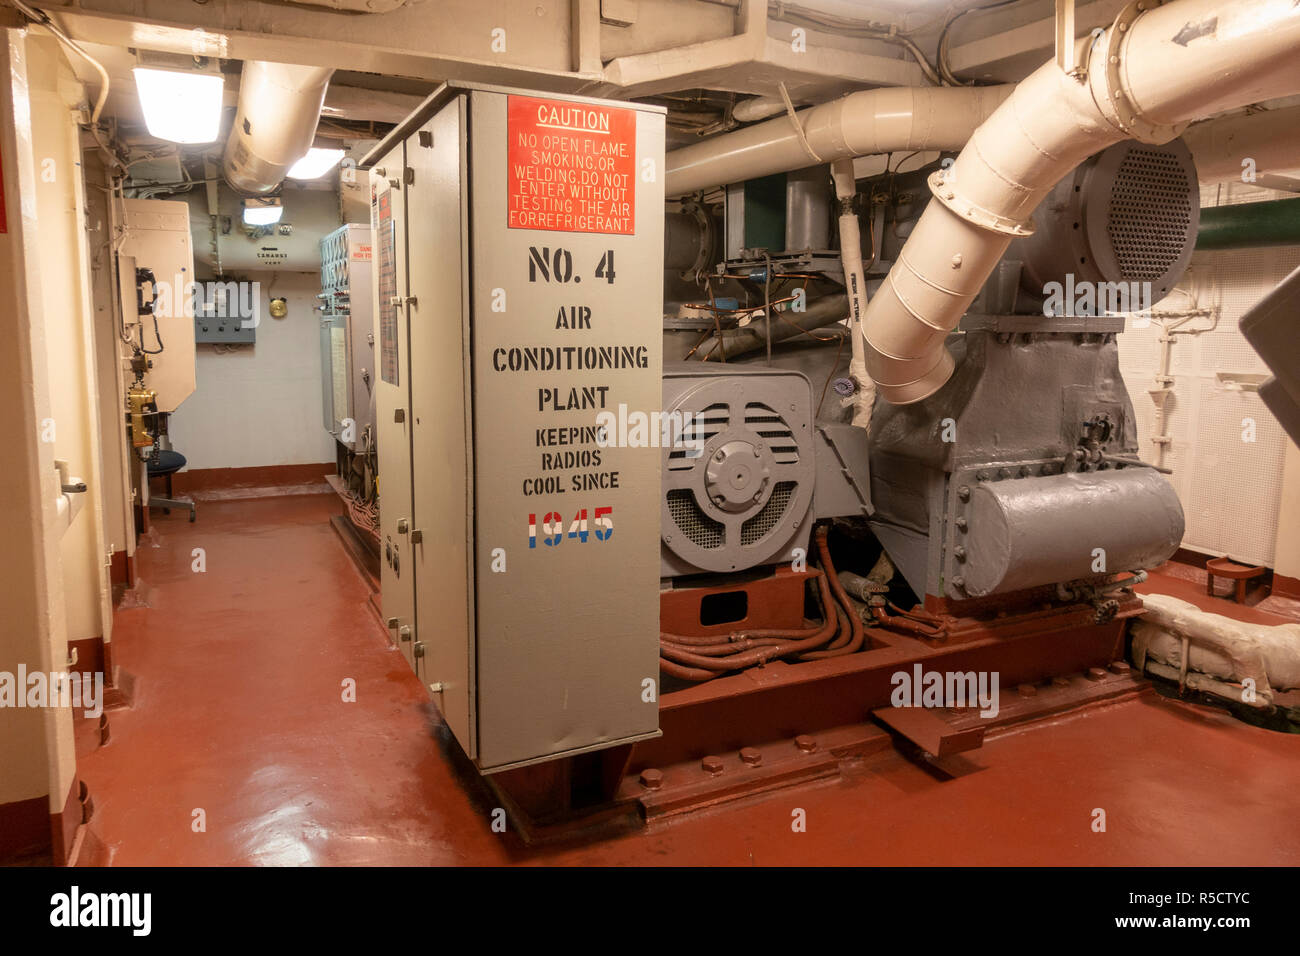 No 4 air conditioning plant, USS Midway Museum, San Diego, California, United States. - Stock Image